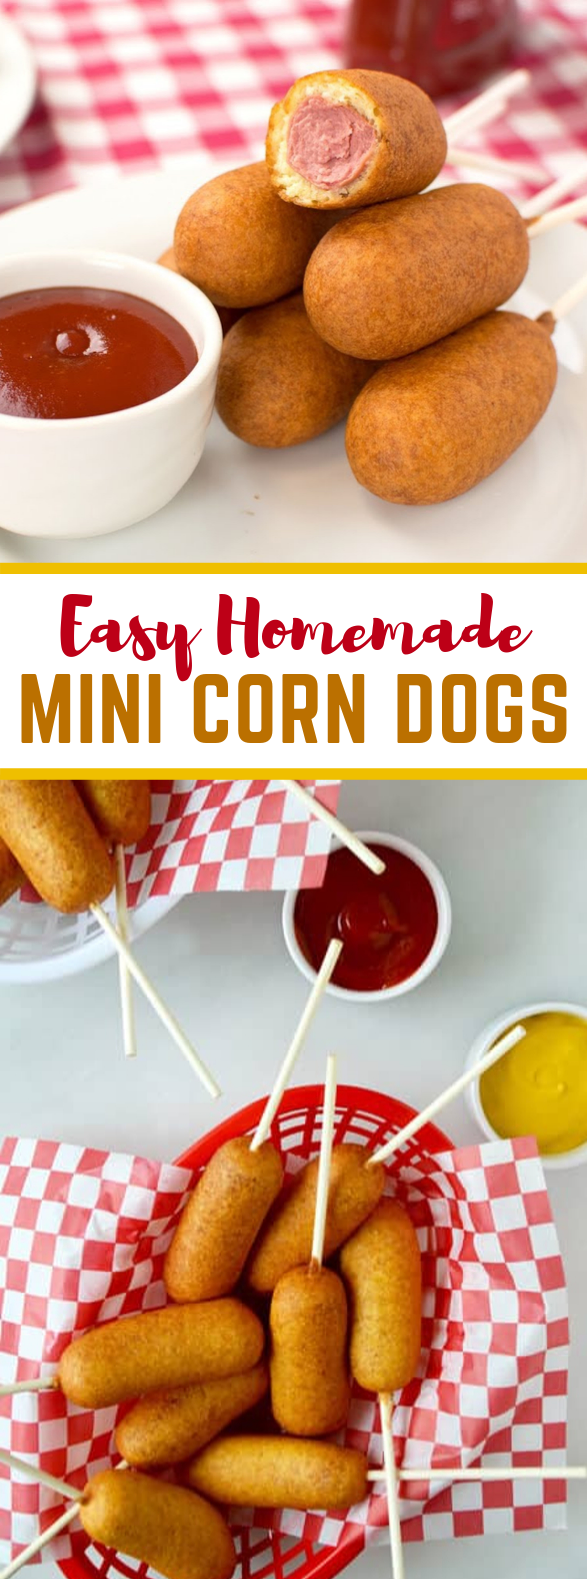 Easy Homemade Mini Corn Dogs #food #lunch